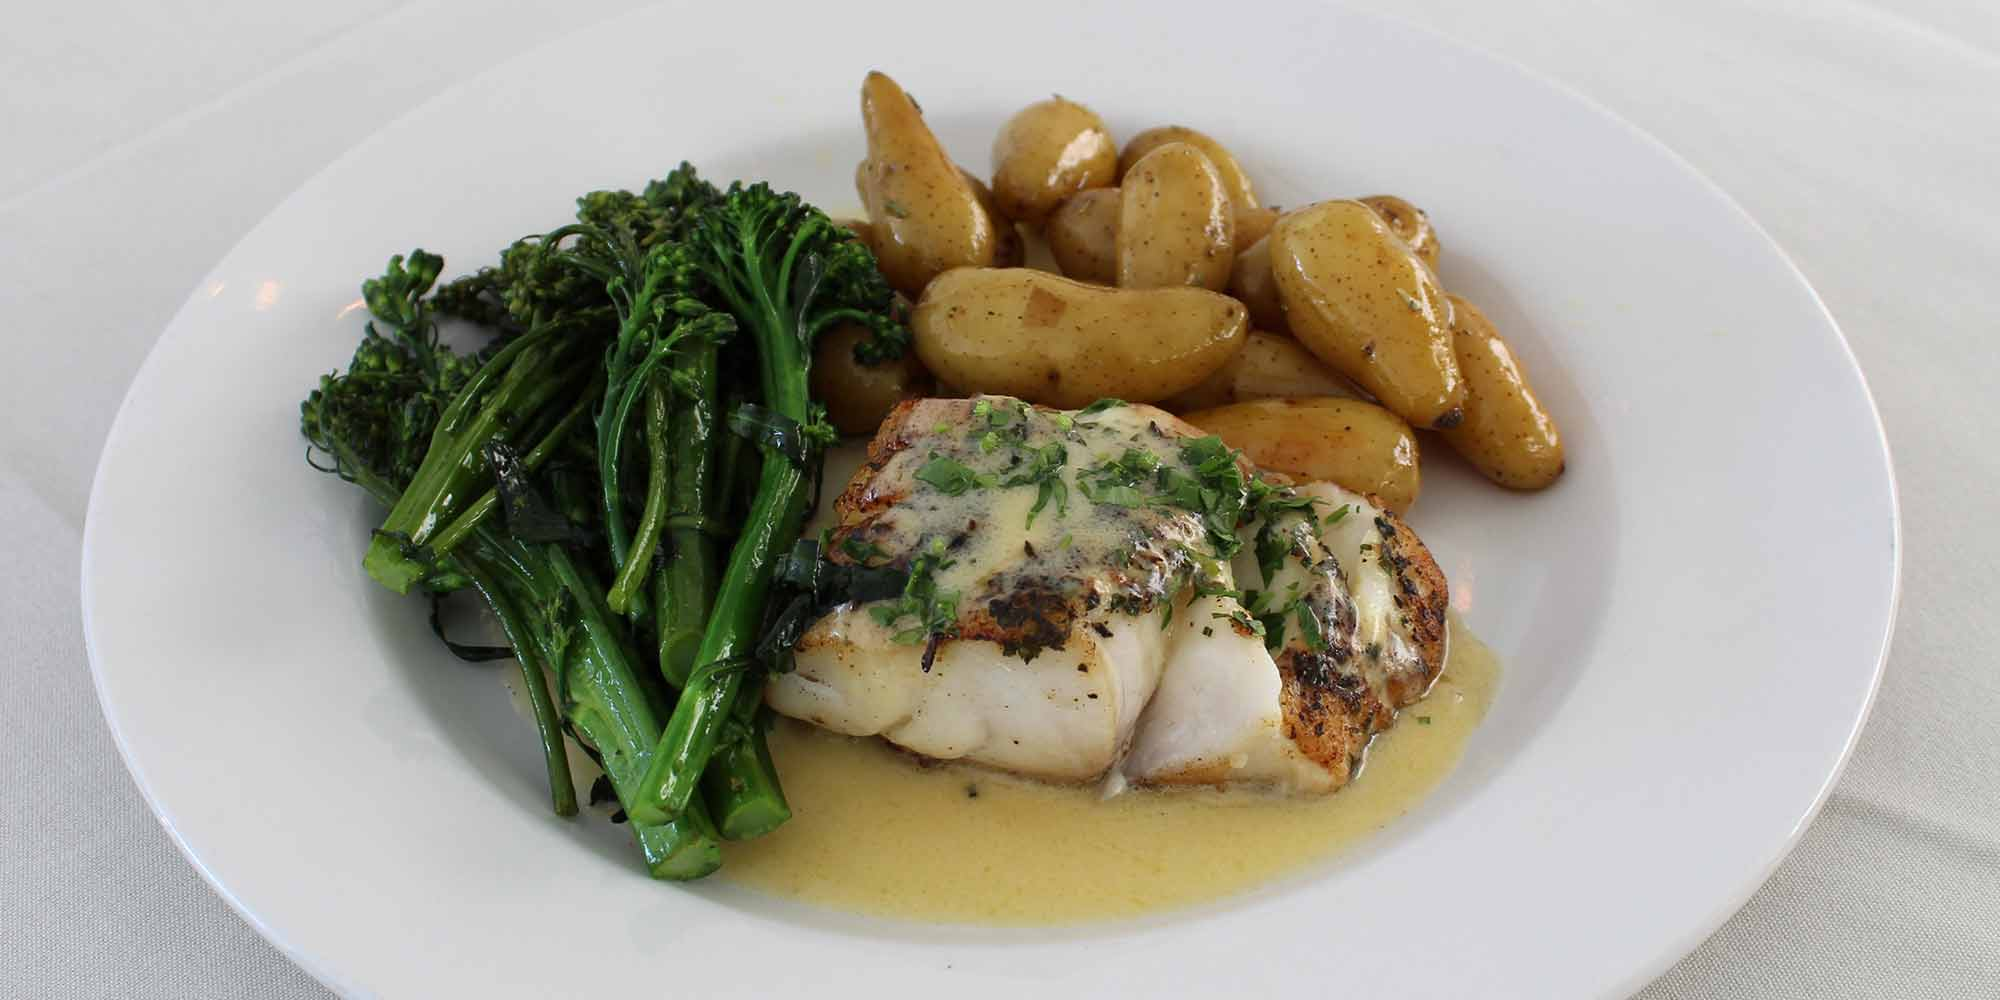 pan fried cod with butter sauce. brocollini and potatoes